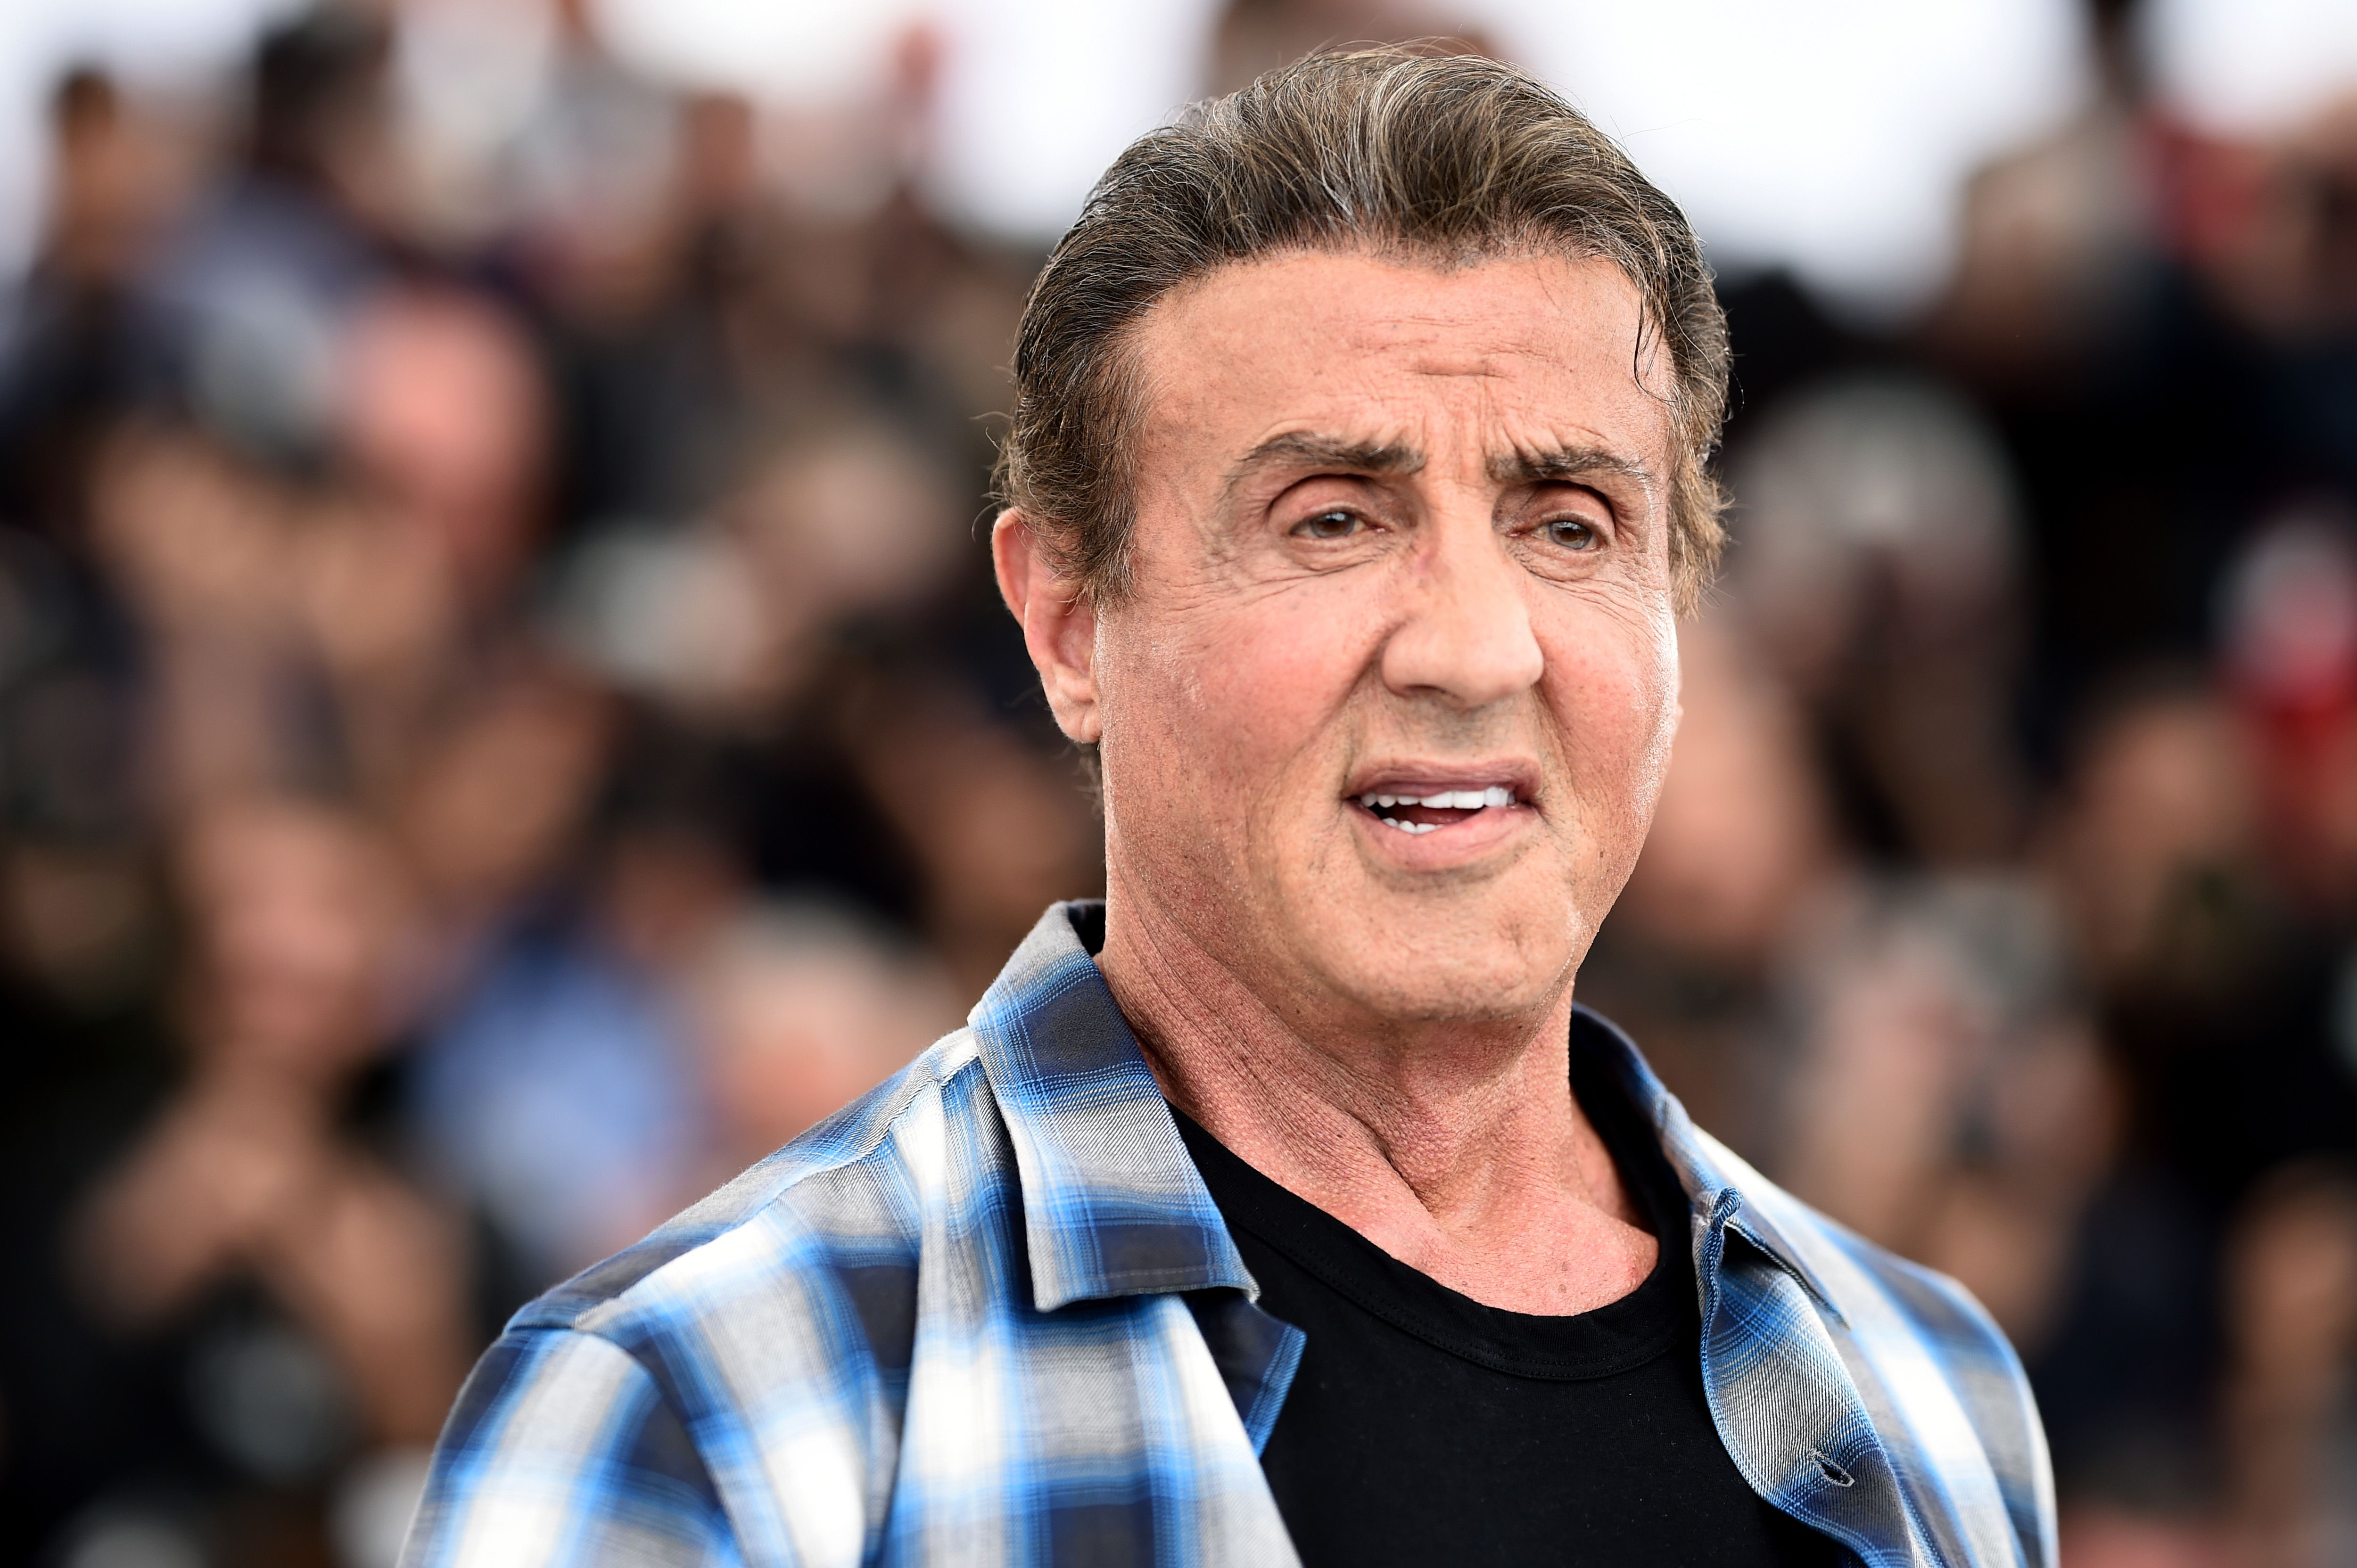 """Sylvester Stallone at thephotocall for """"Sylvester Stallone & Rambo V: Last Blood"""" during the 72nd annual Cannes Film Festival on May 24, 2019   Photo: Getty Images"""